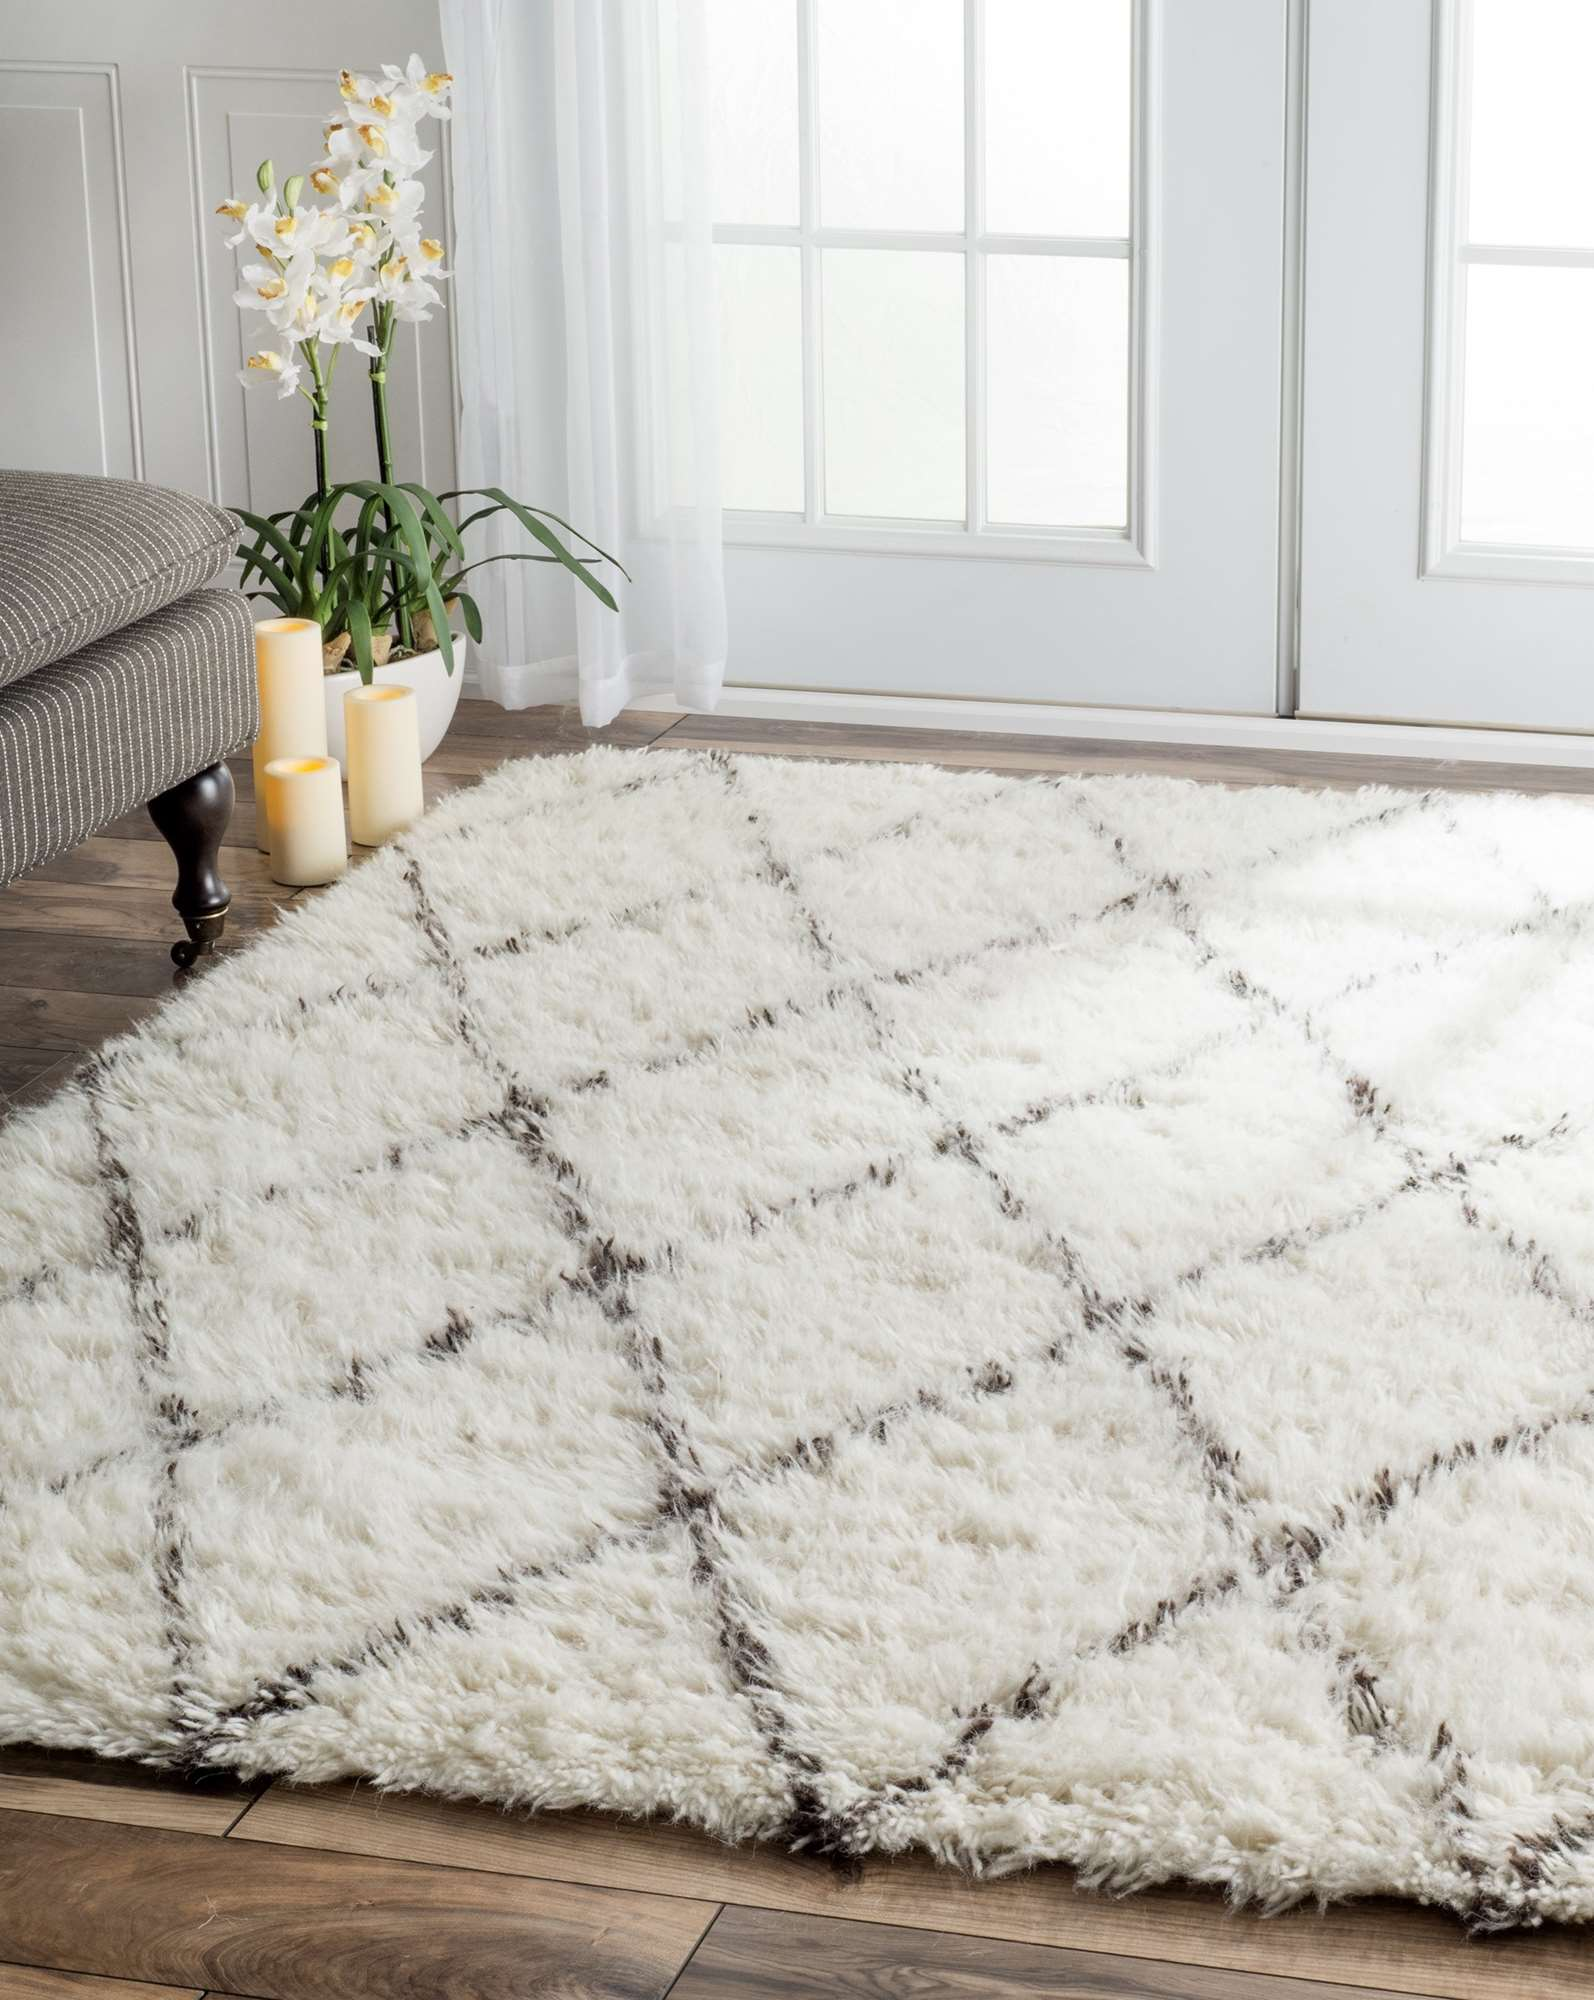 Marvelous Shaggy Contemporary Area Rugs Idea | Winsome Marrakesh Shag Rug